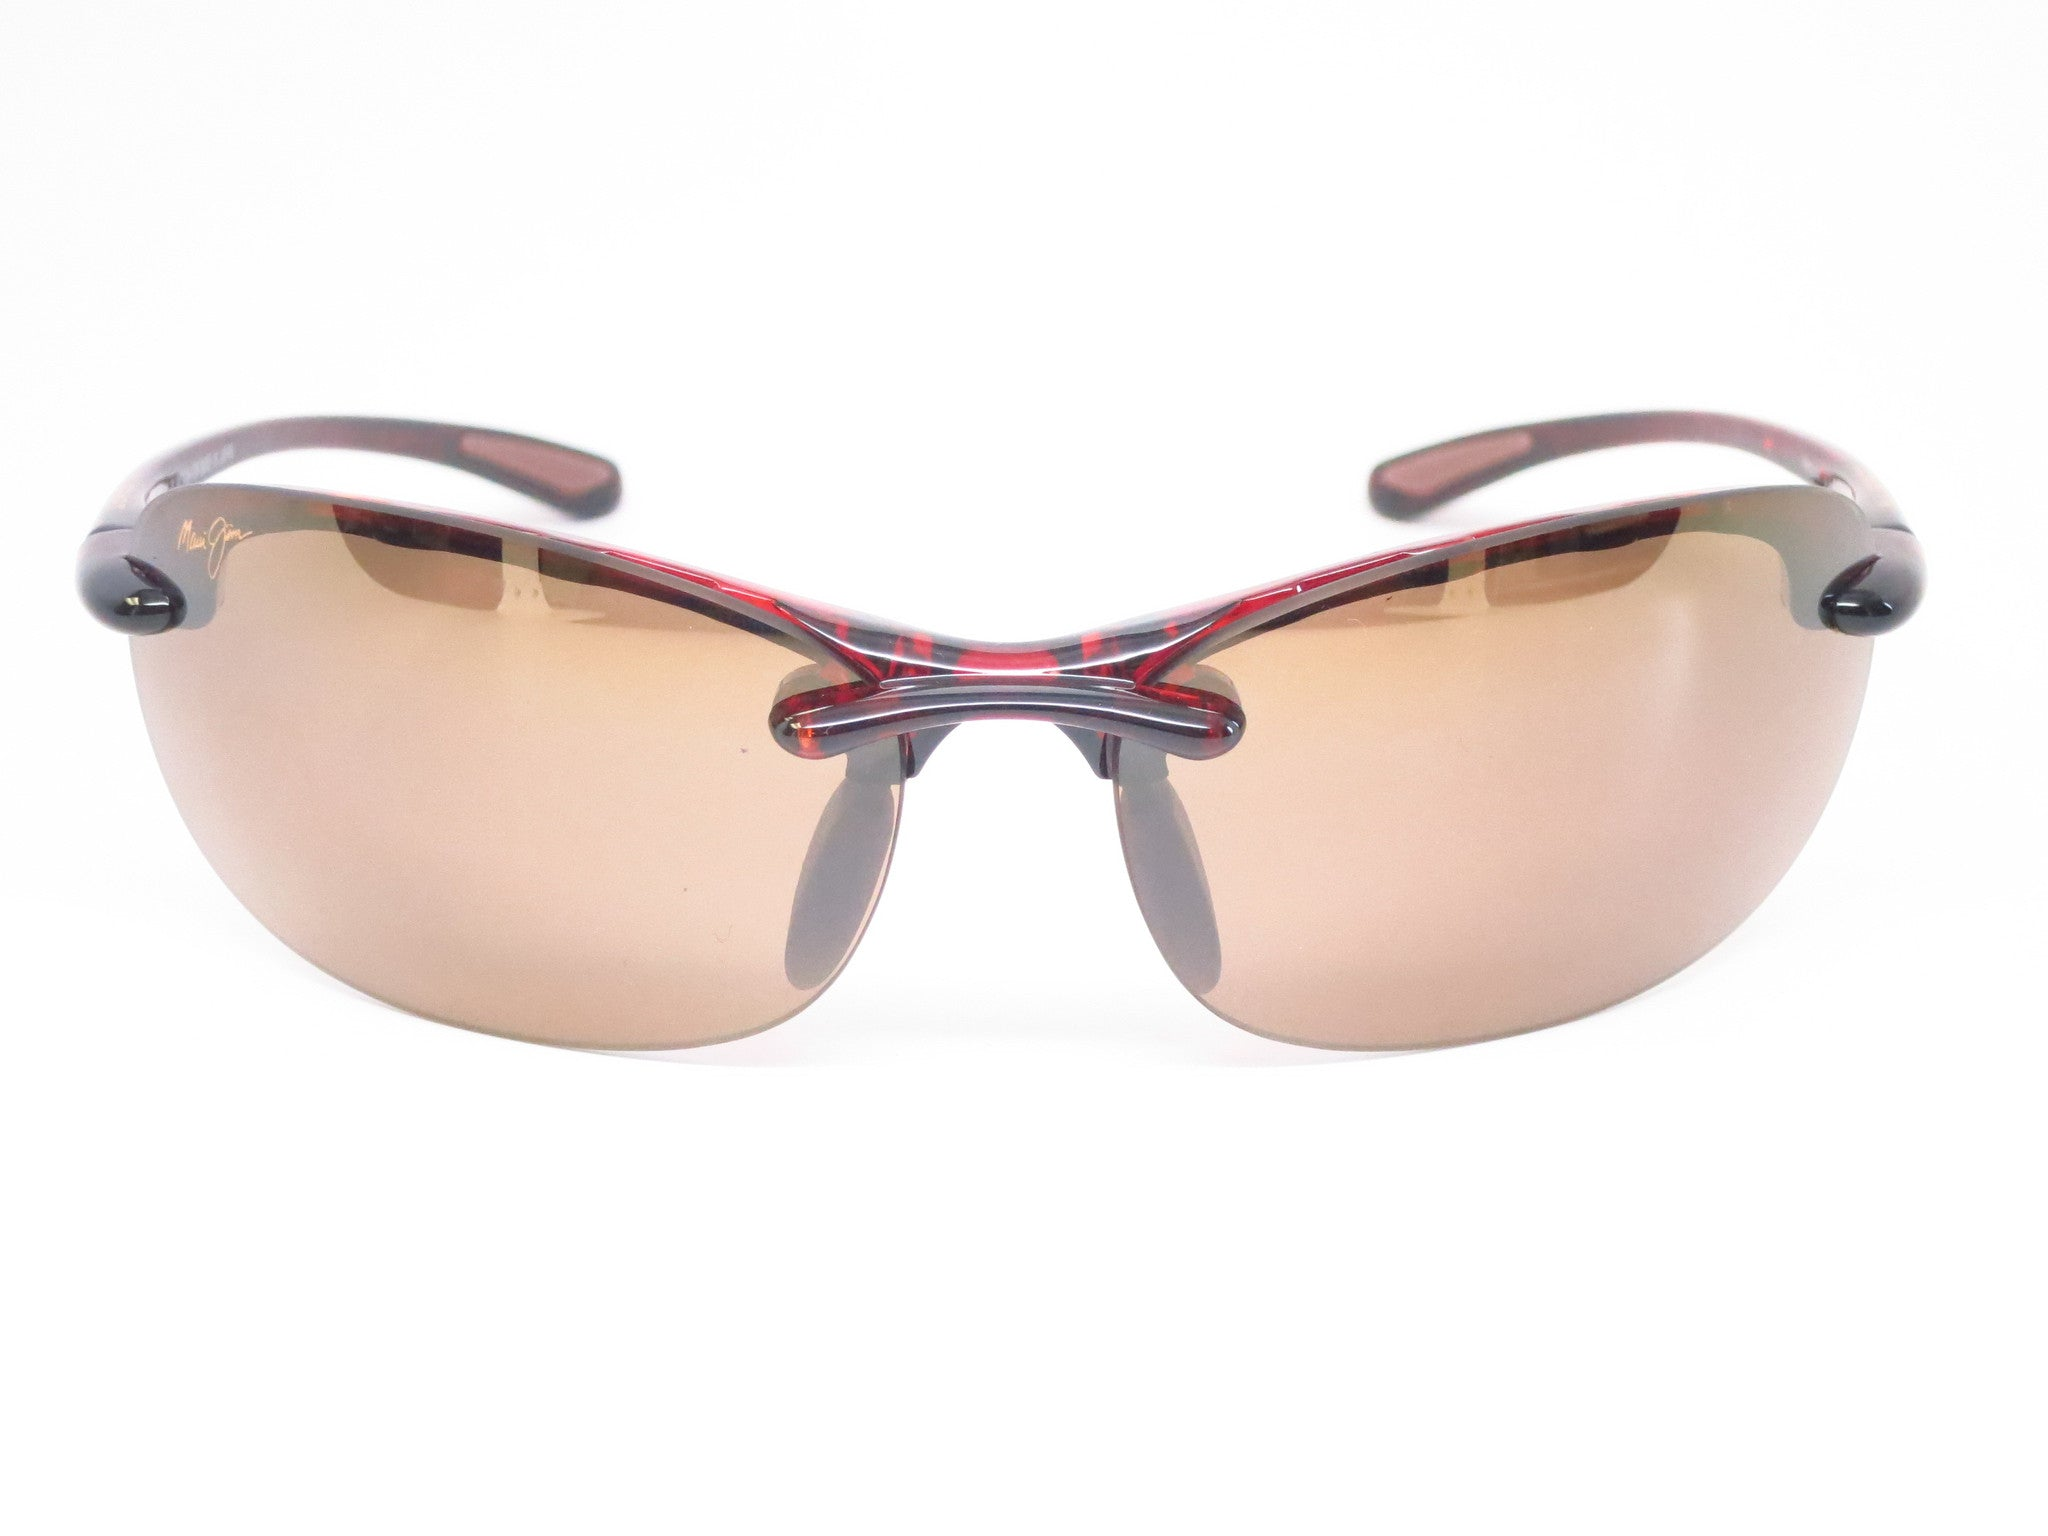 93f70b33f89 ... Maui Jim Hanalei H413-10 Tortoise Polarized Sunglasses - Eye Heart  Shades - Maui Jim ...